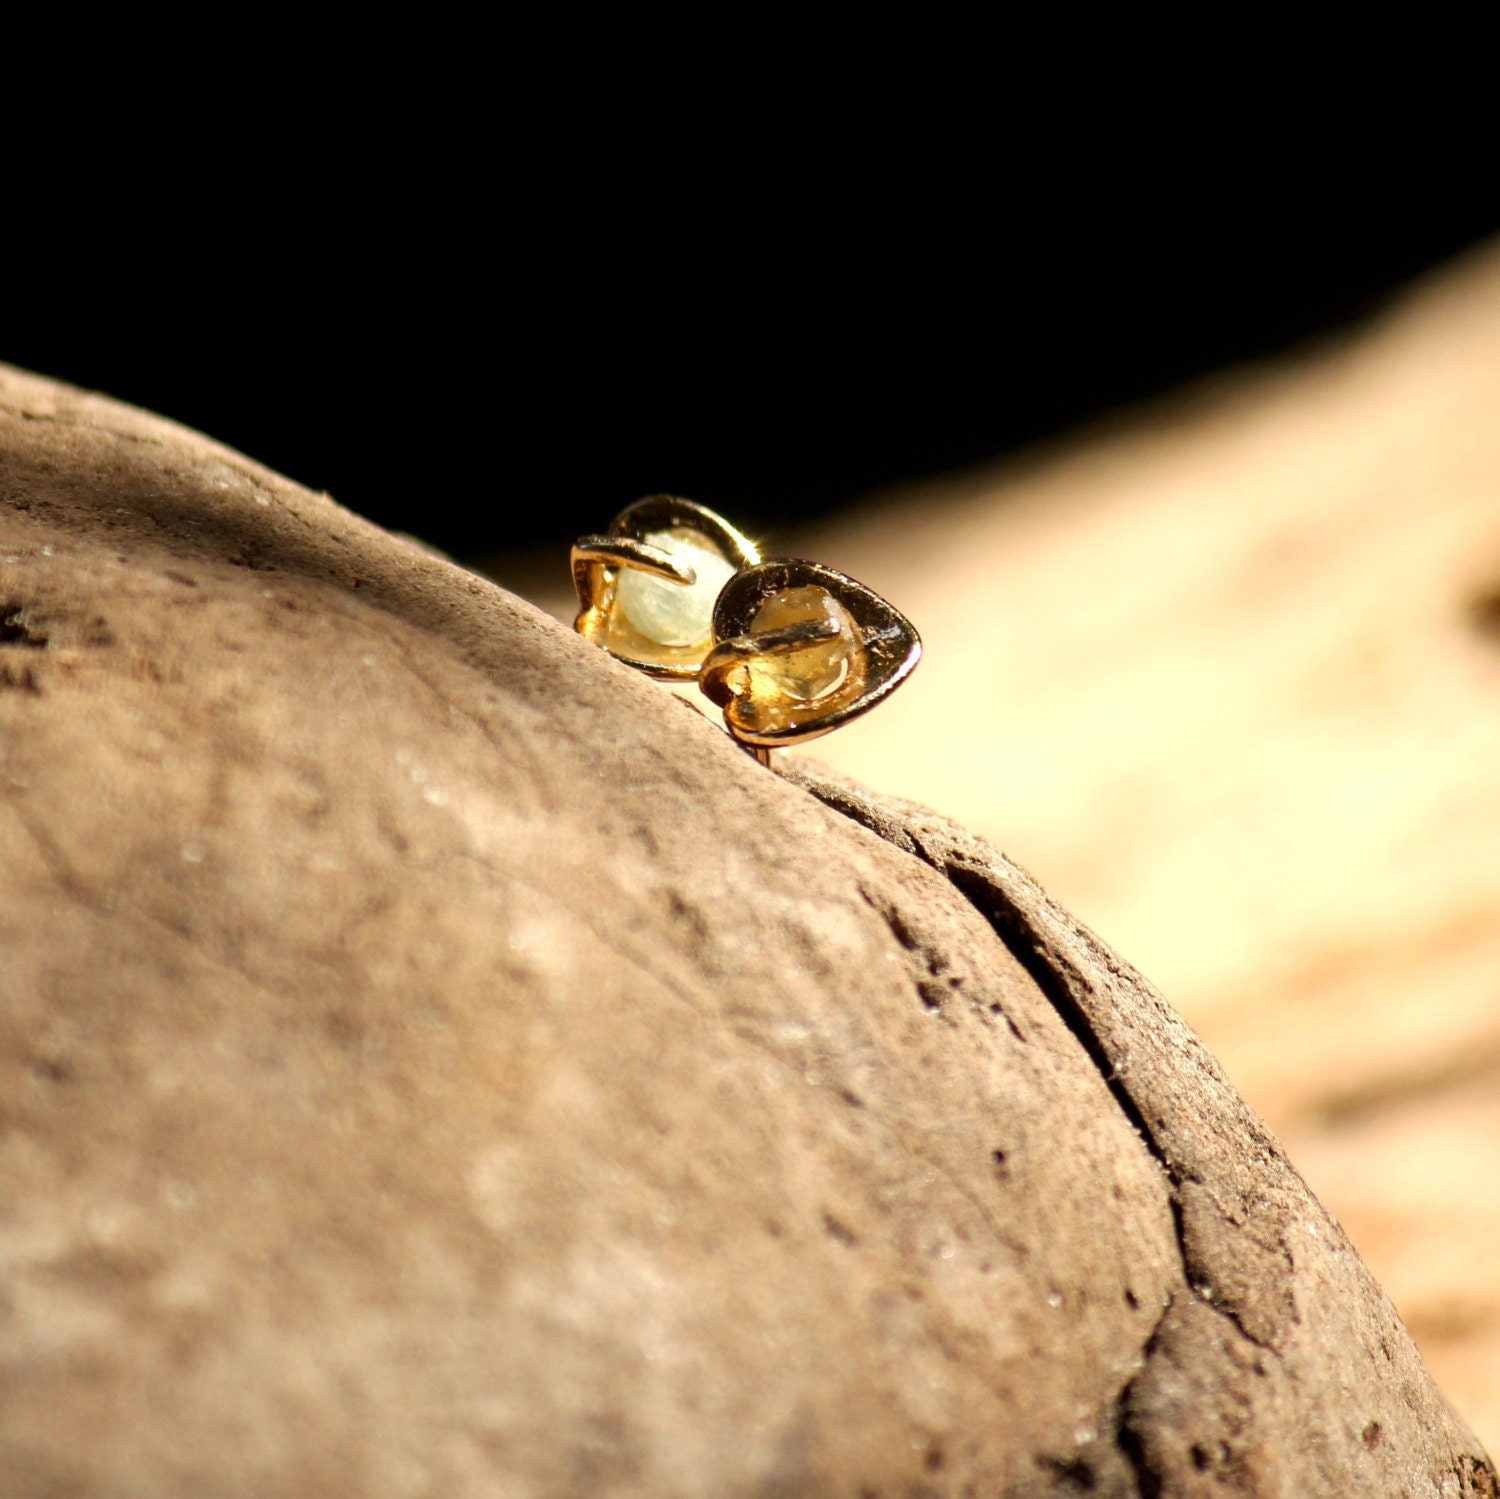 Gold filled ear post stud earrings with raw gemstones - GardensOfTheSun